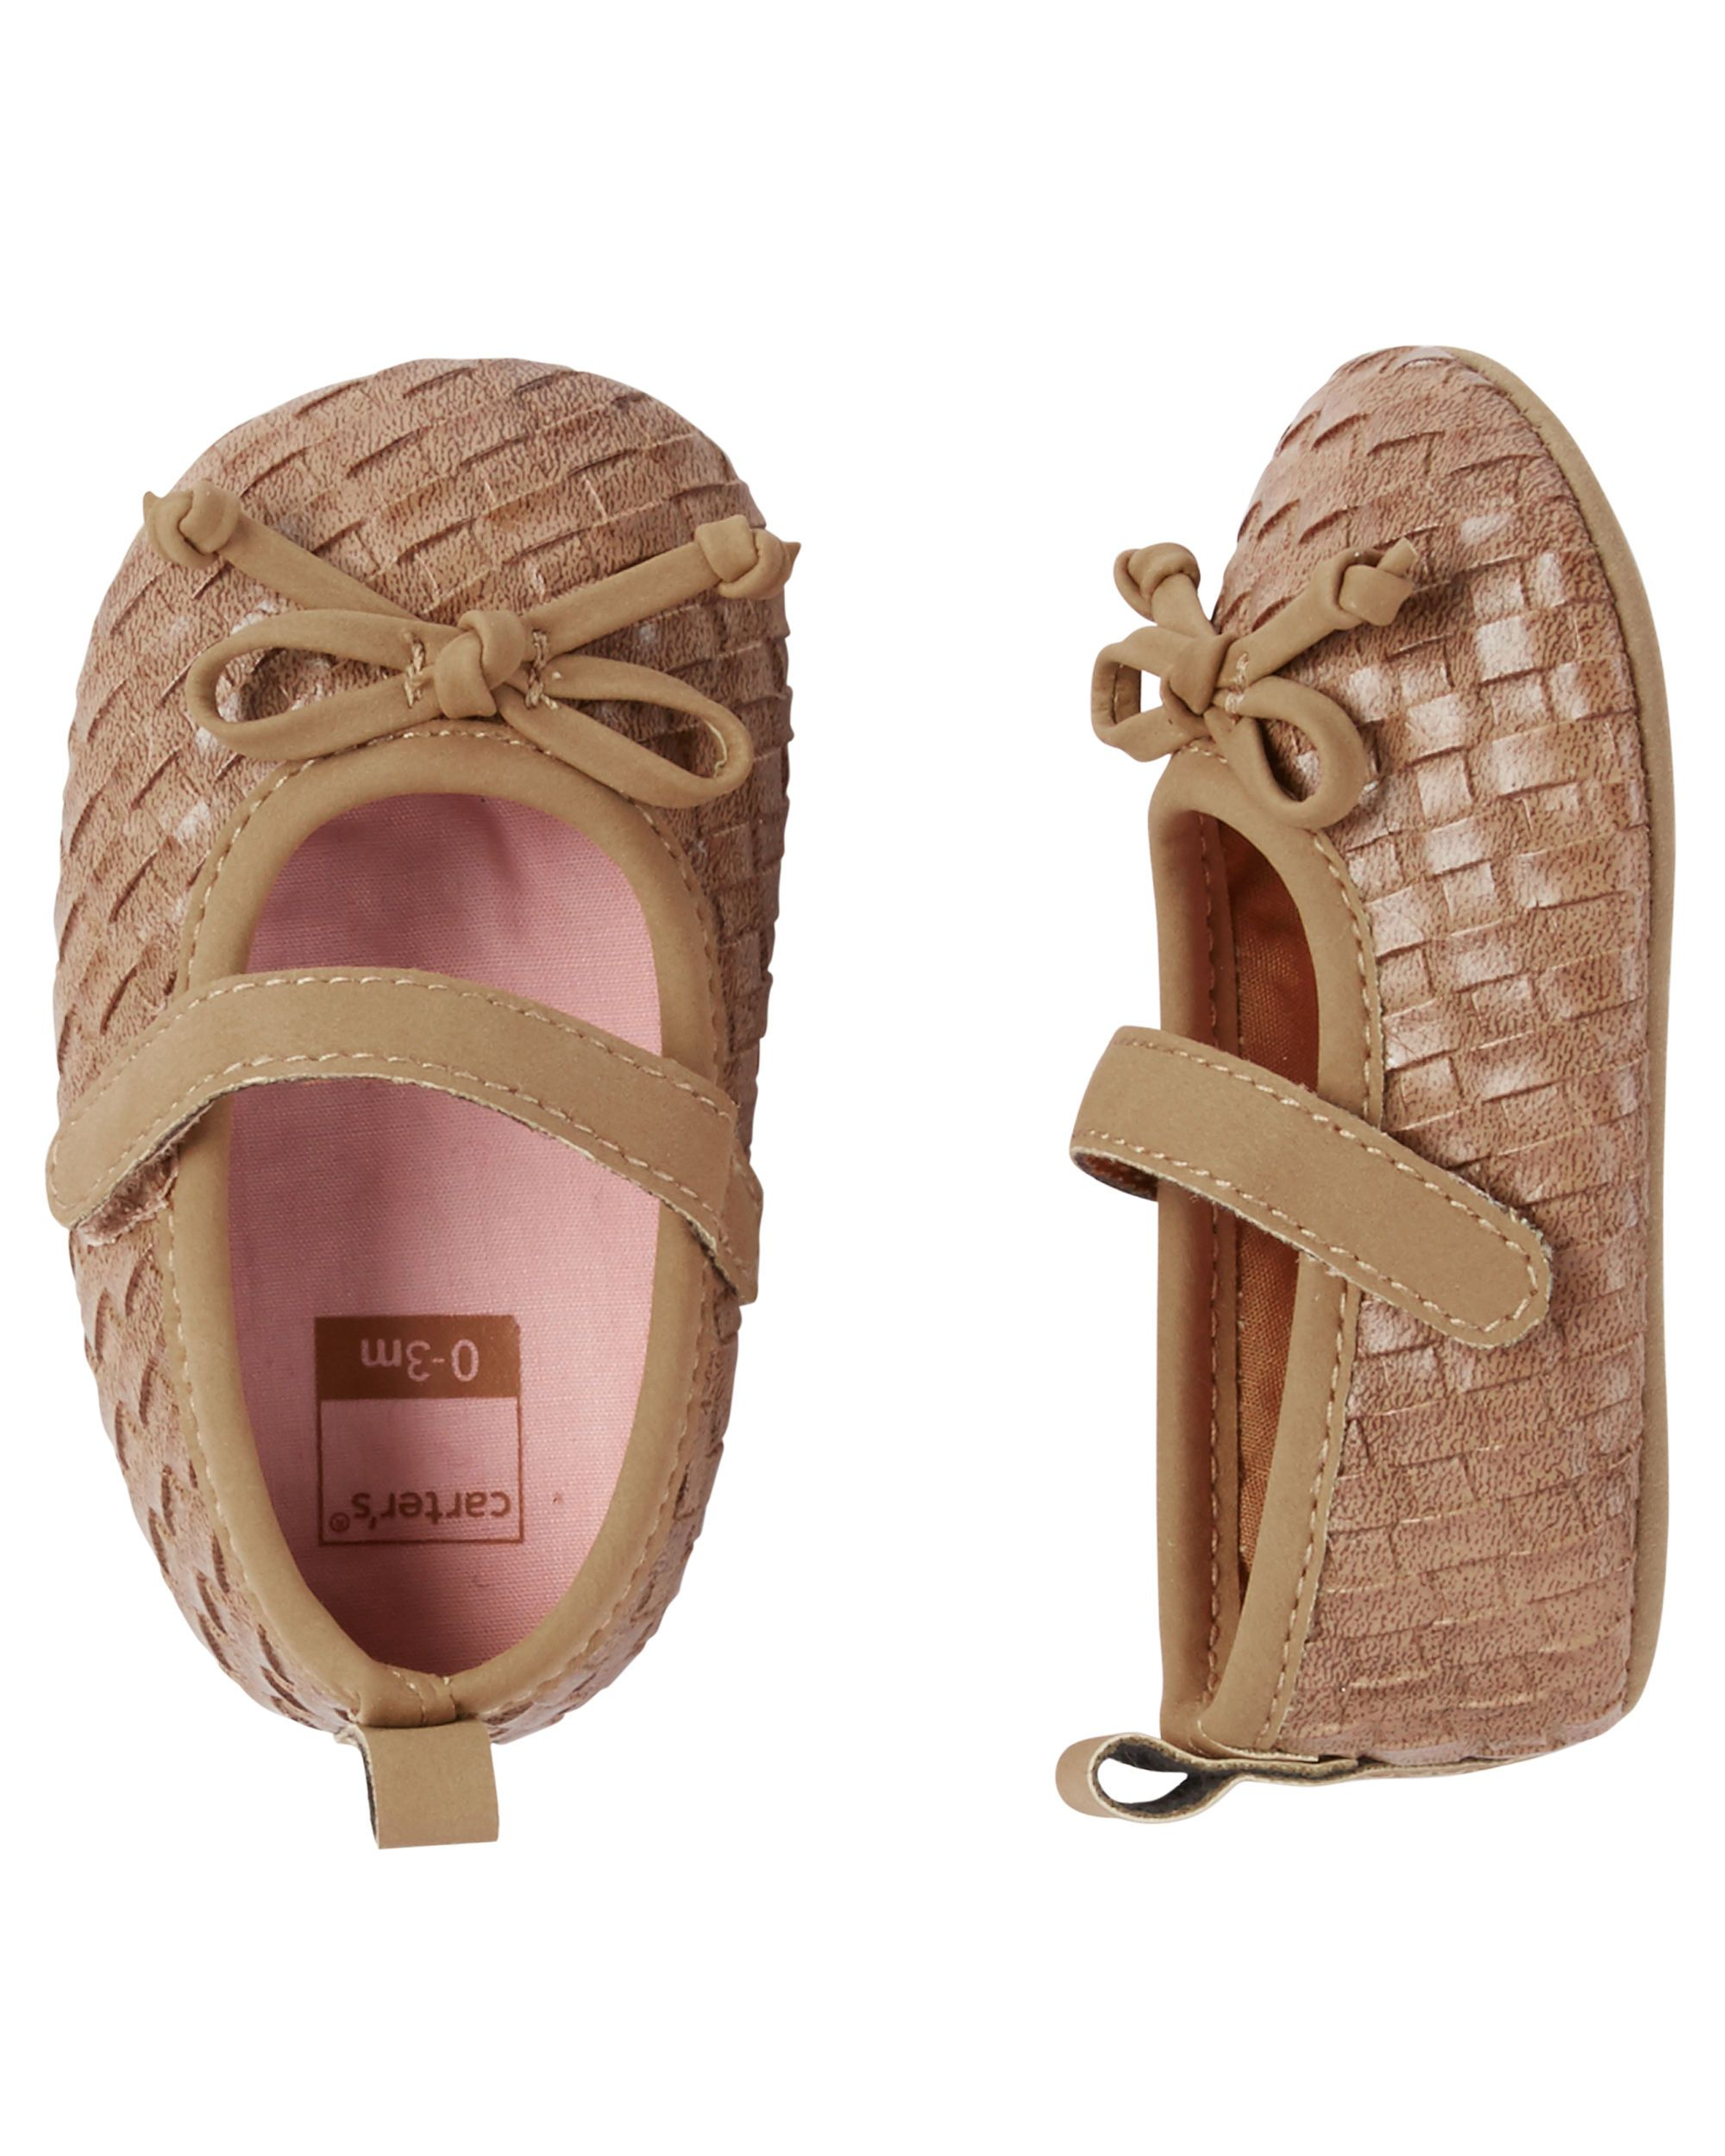 55d26e7c3 Textured Mary Jane Crib Shoes | Carters Fall 2016 | Carters baby ...